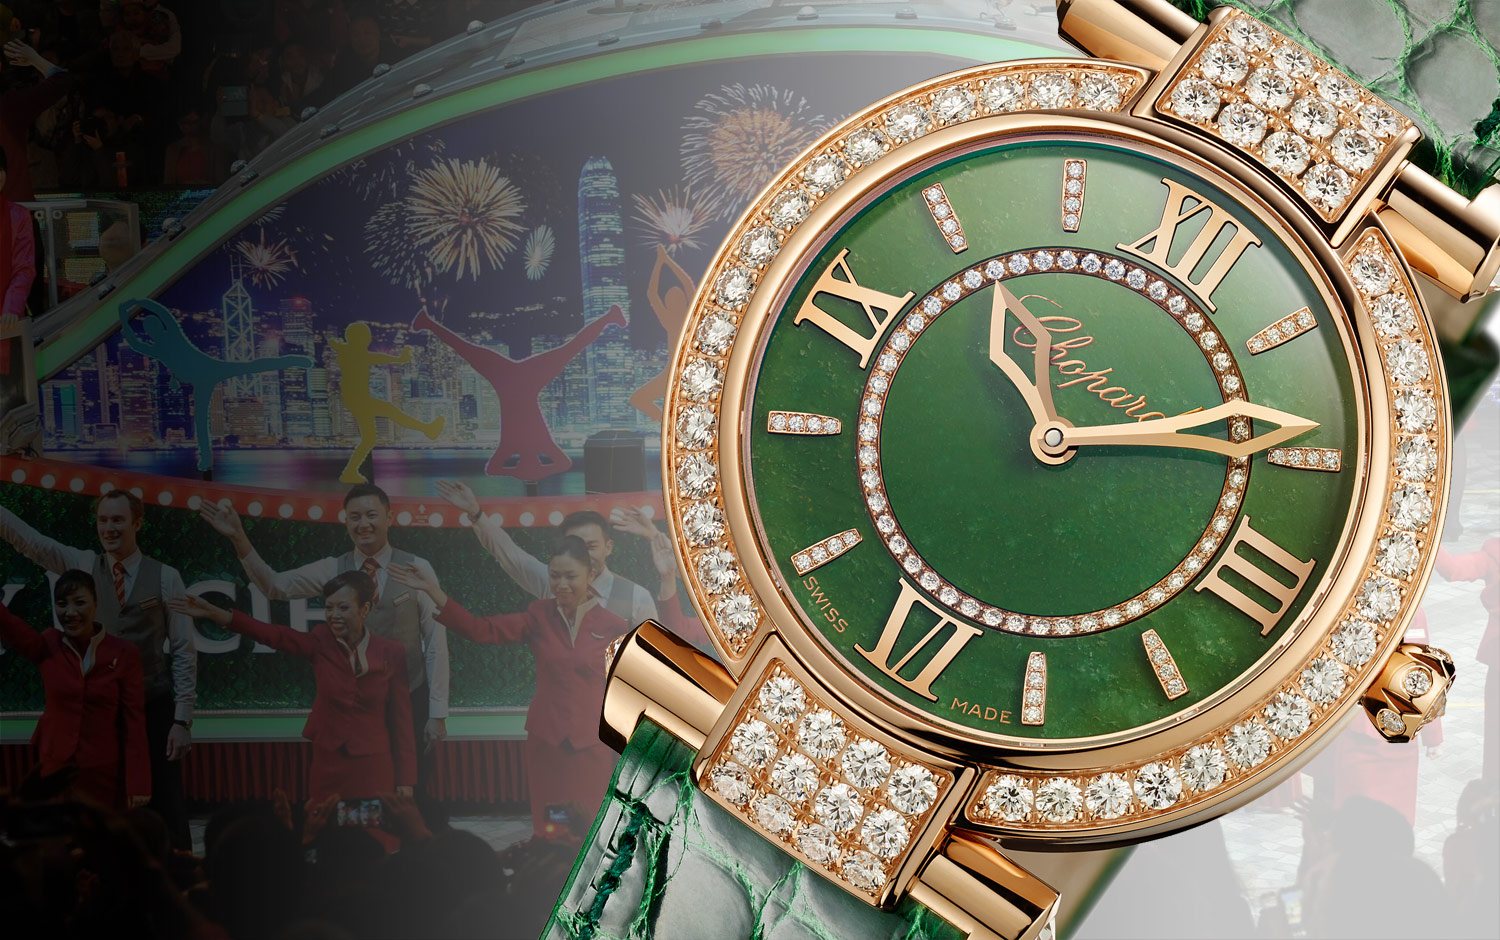 The Imperiale 36mm Jade - A new Chopard classic for Chinese New Year